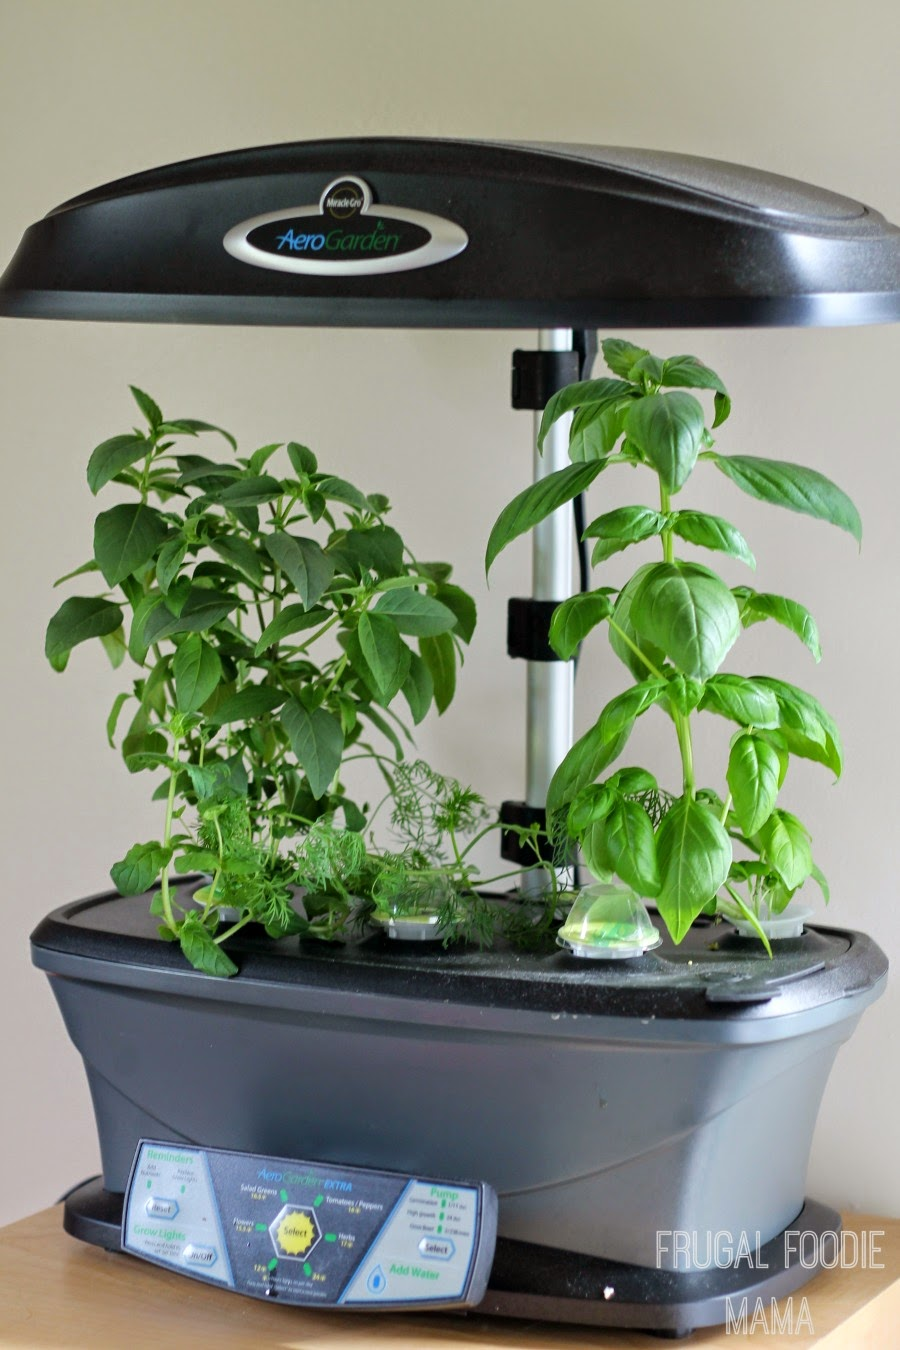 Shop for AeroGarden. Buy products such as Miracle-Gro AeroGarden 3-Pod Indoor Sprout LED Plus with Herb Seed Kit | AERO at Walmart and save.